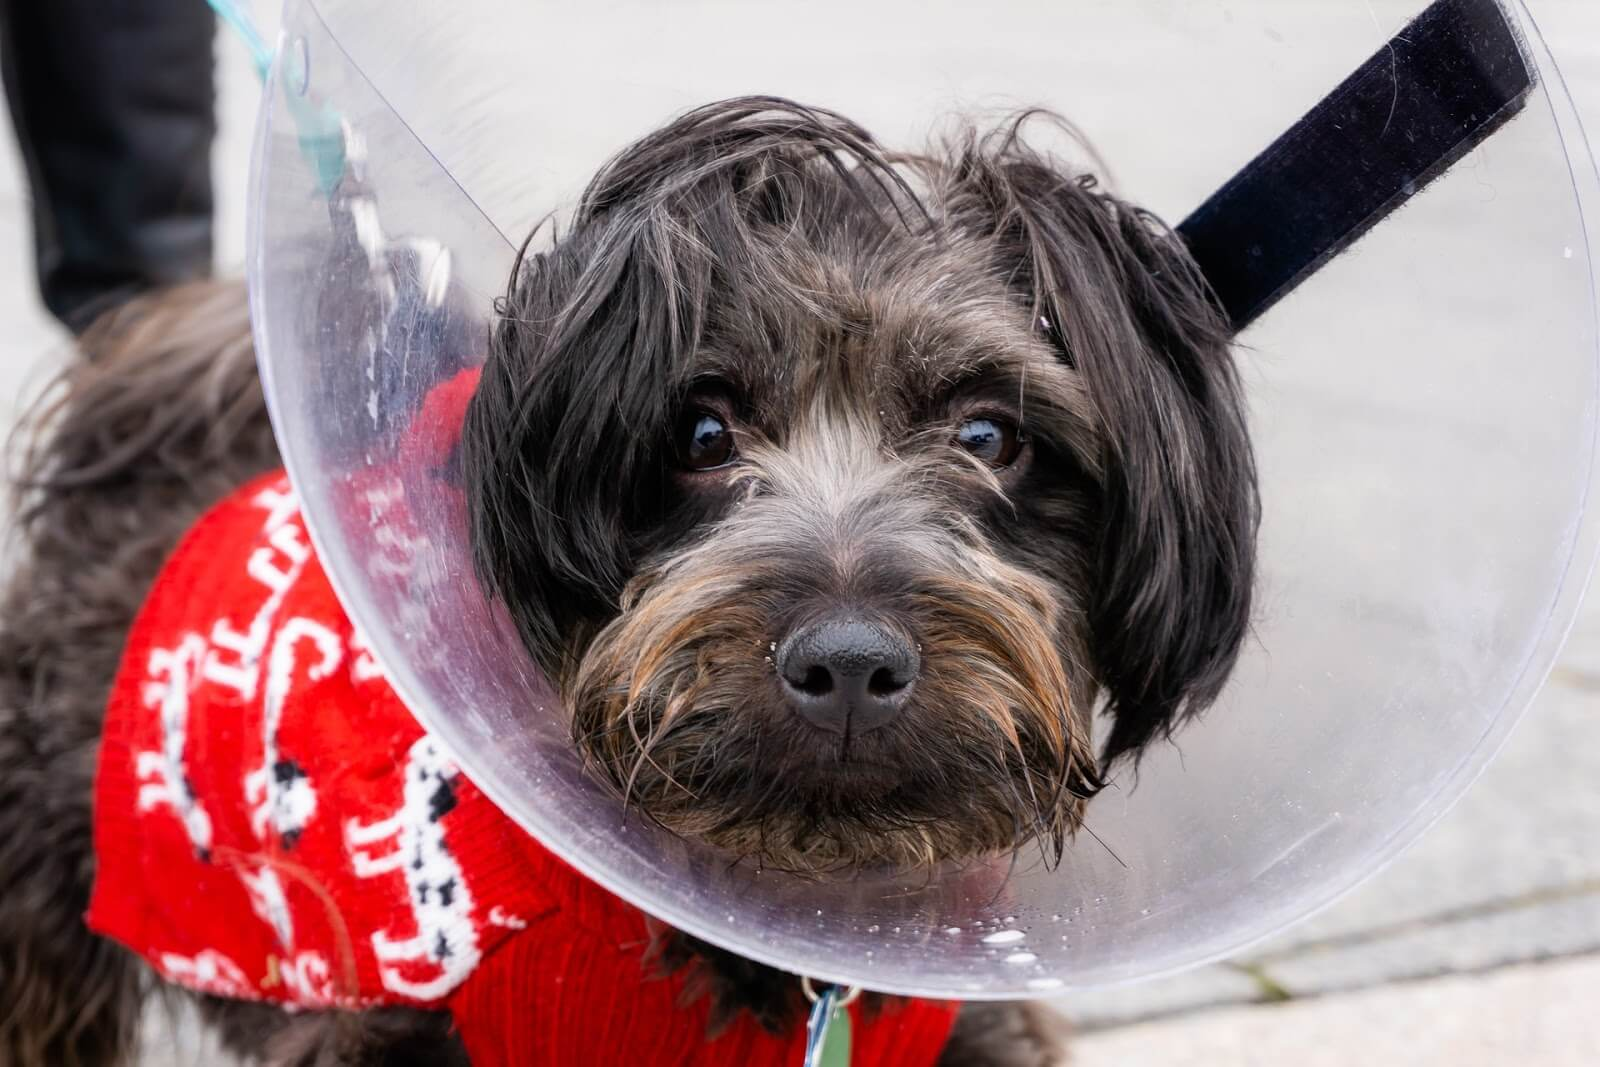 A dog in a sweater and cone